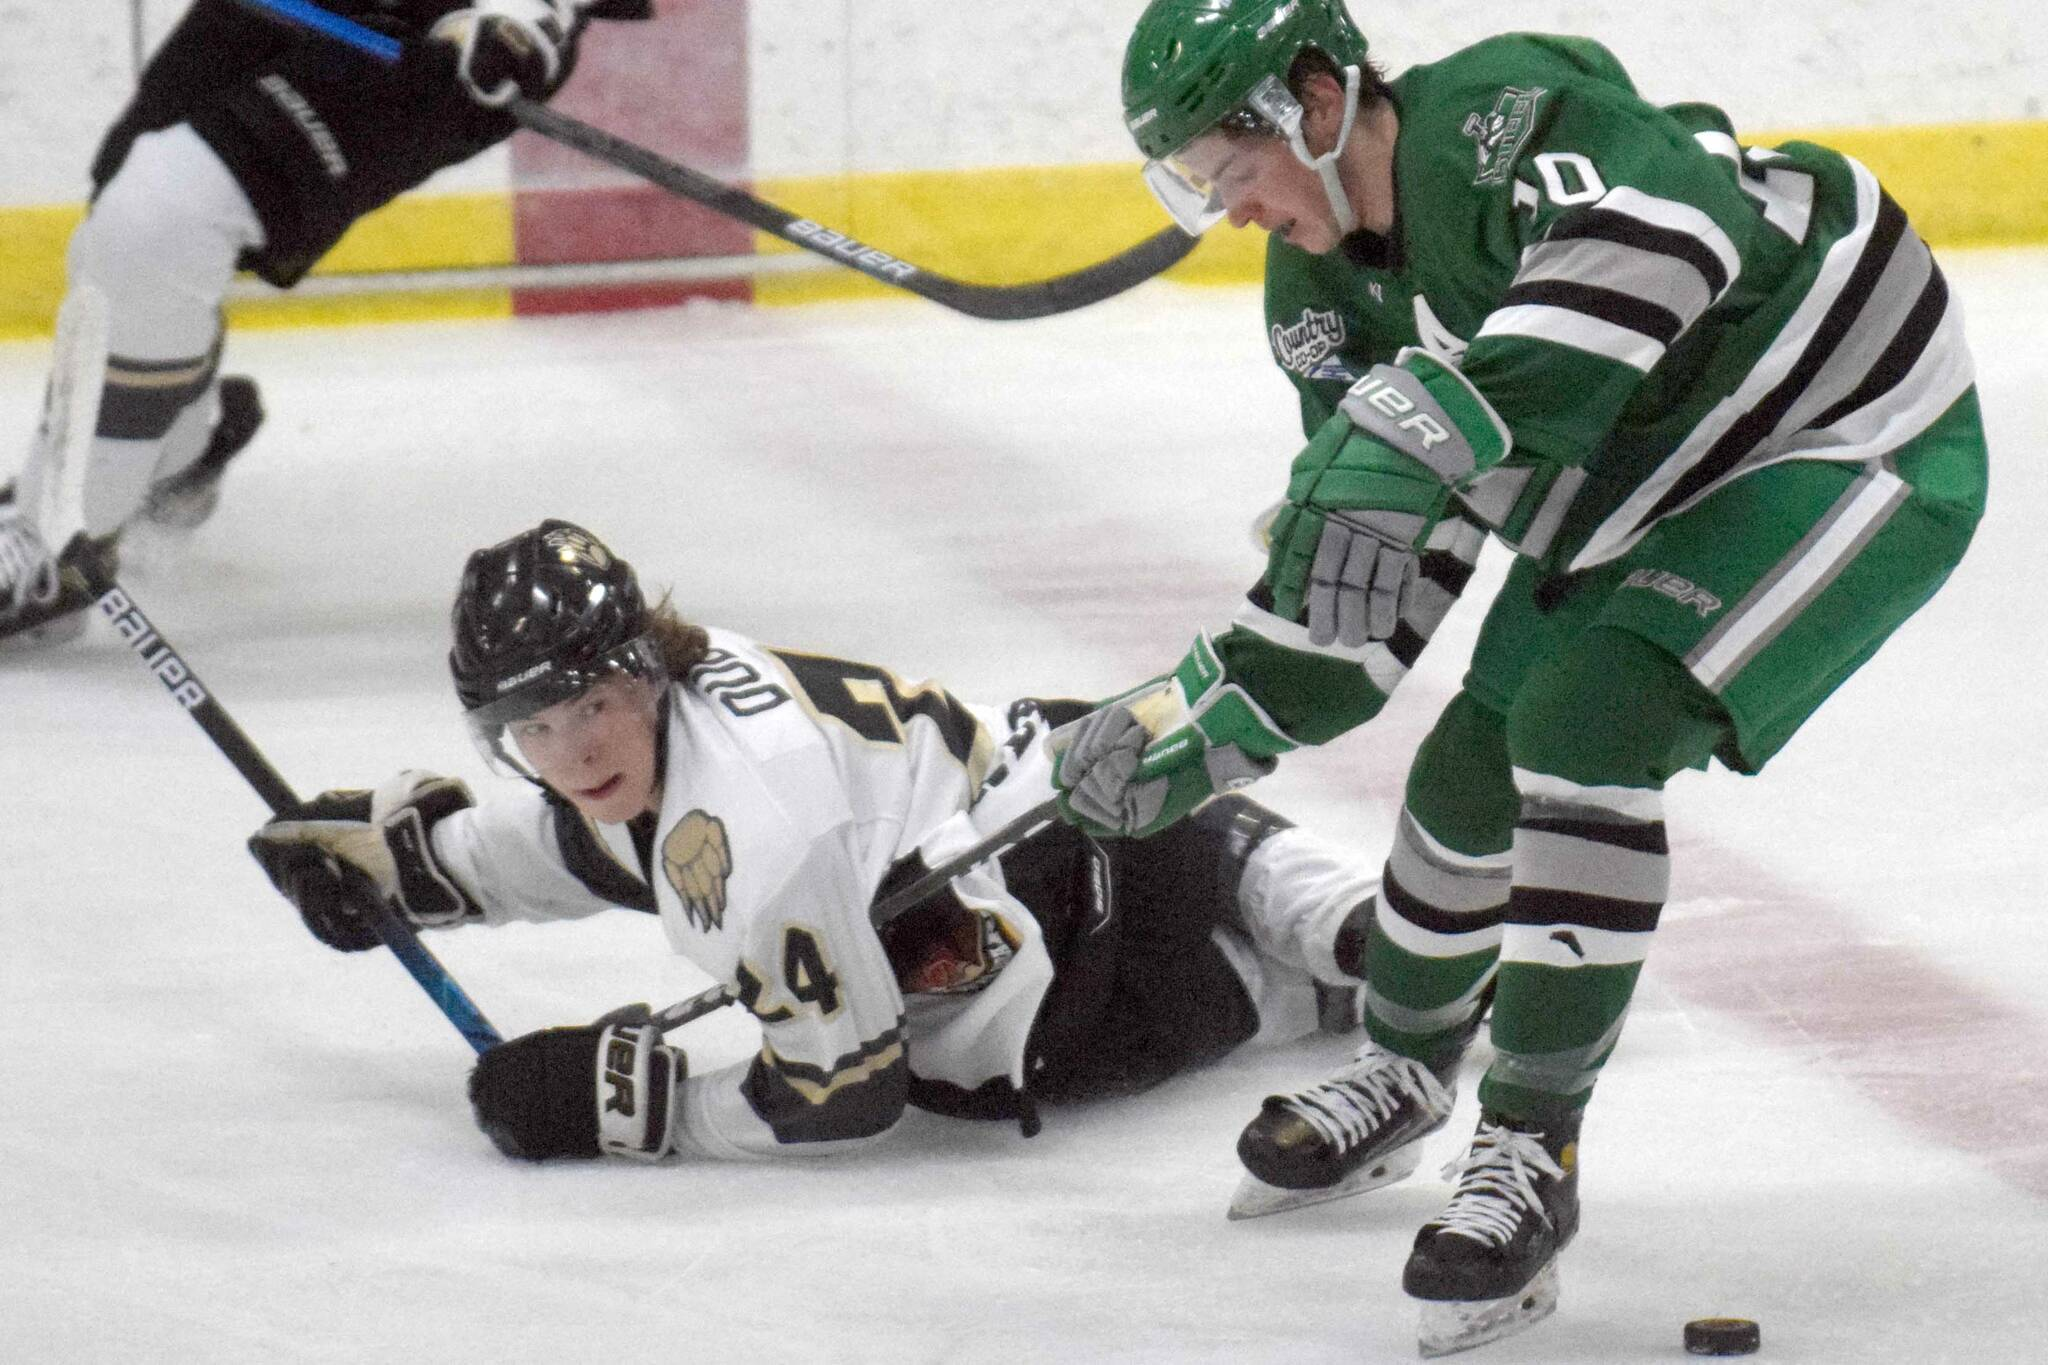 Brown Bears forward Cole Dubicki and Chippewa (Wisconsin) Steel forward Ethan Benz tangle for the puck Thursday, Oct. 21, 2021, at the Soldotna Regional Sports Complex. (Photo by Jeff Helminiak/Peninsula Clarion)